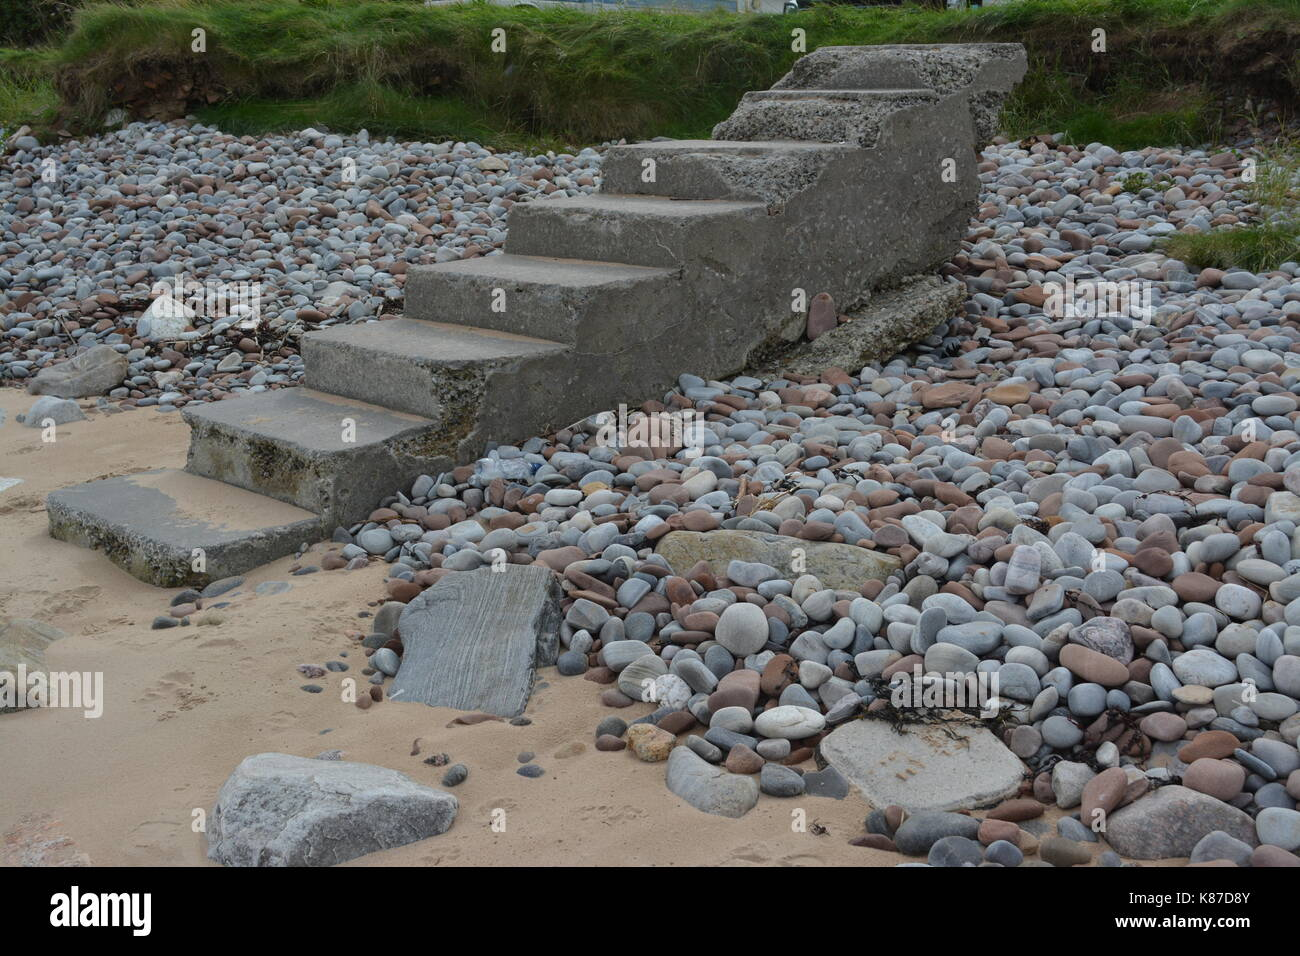 Concrete formed steps stairs on sandy pebble beach leading no where due to coastal erosion poor maintenance at Rosemarkie in Scotland - Stock Image